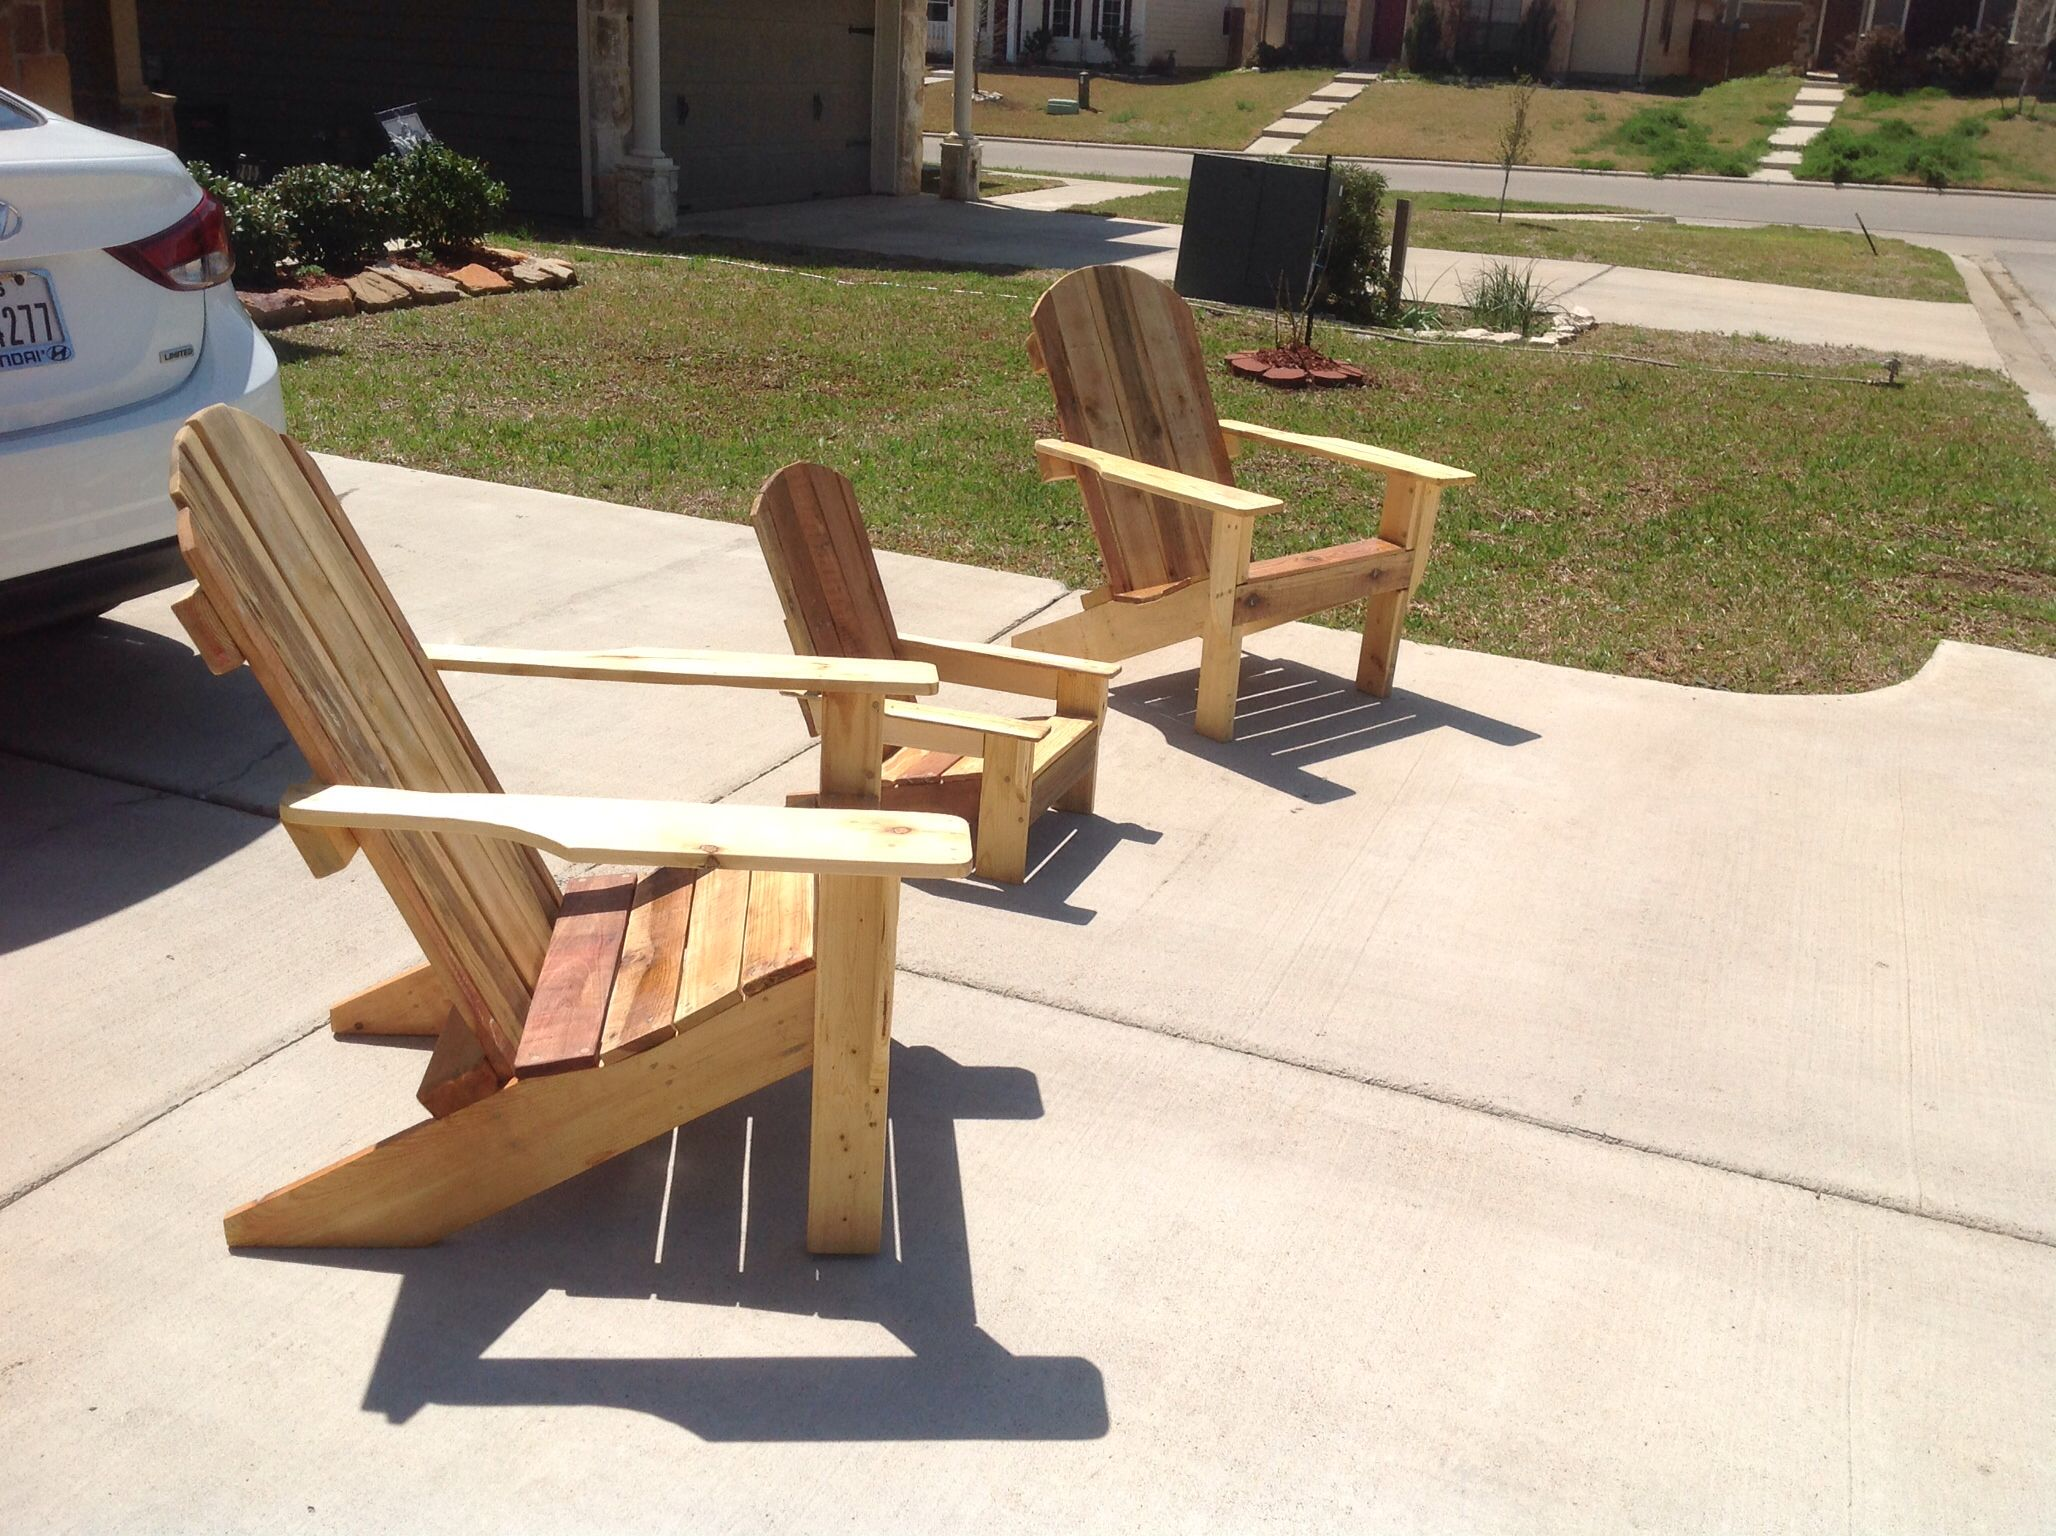 pallet sofa for sale martino leather repurposed wood pallets adirondack chairs